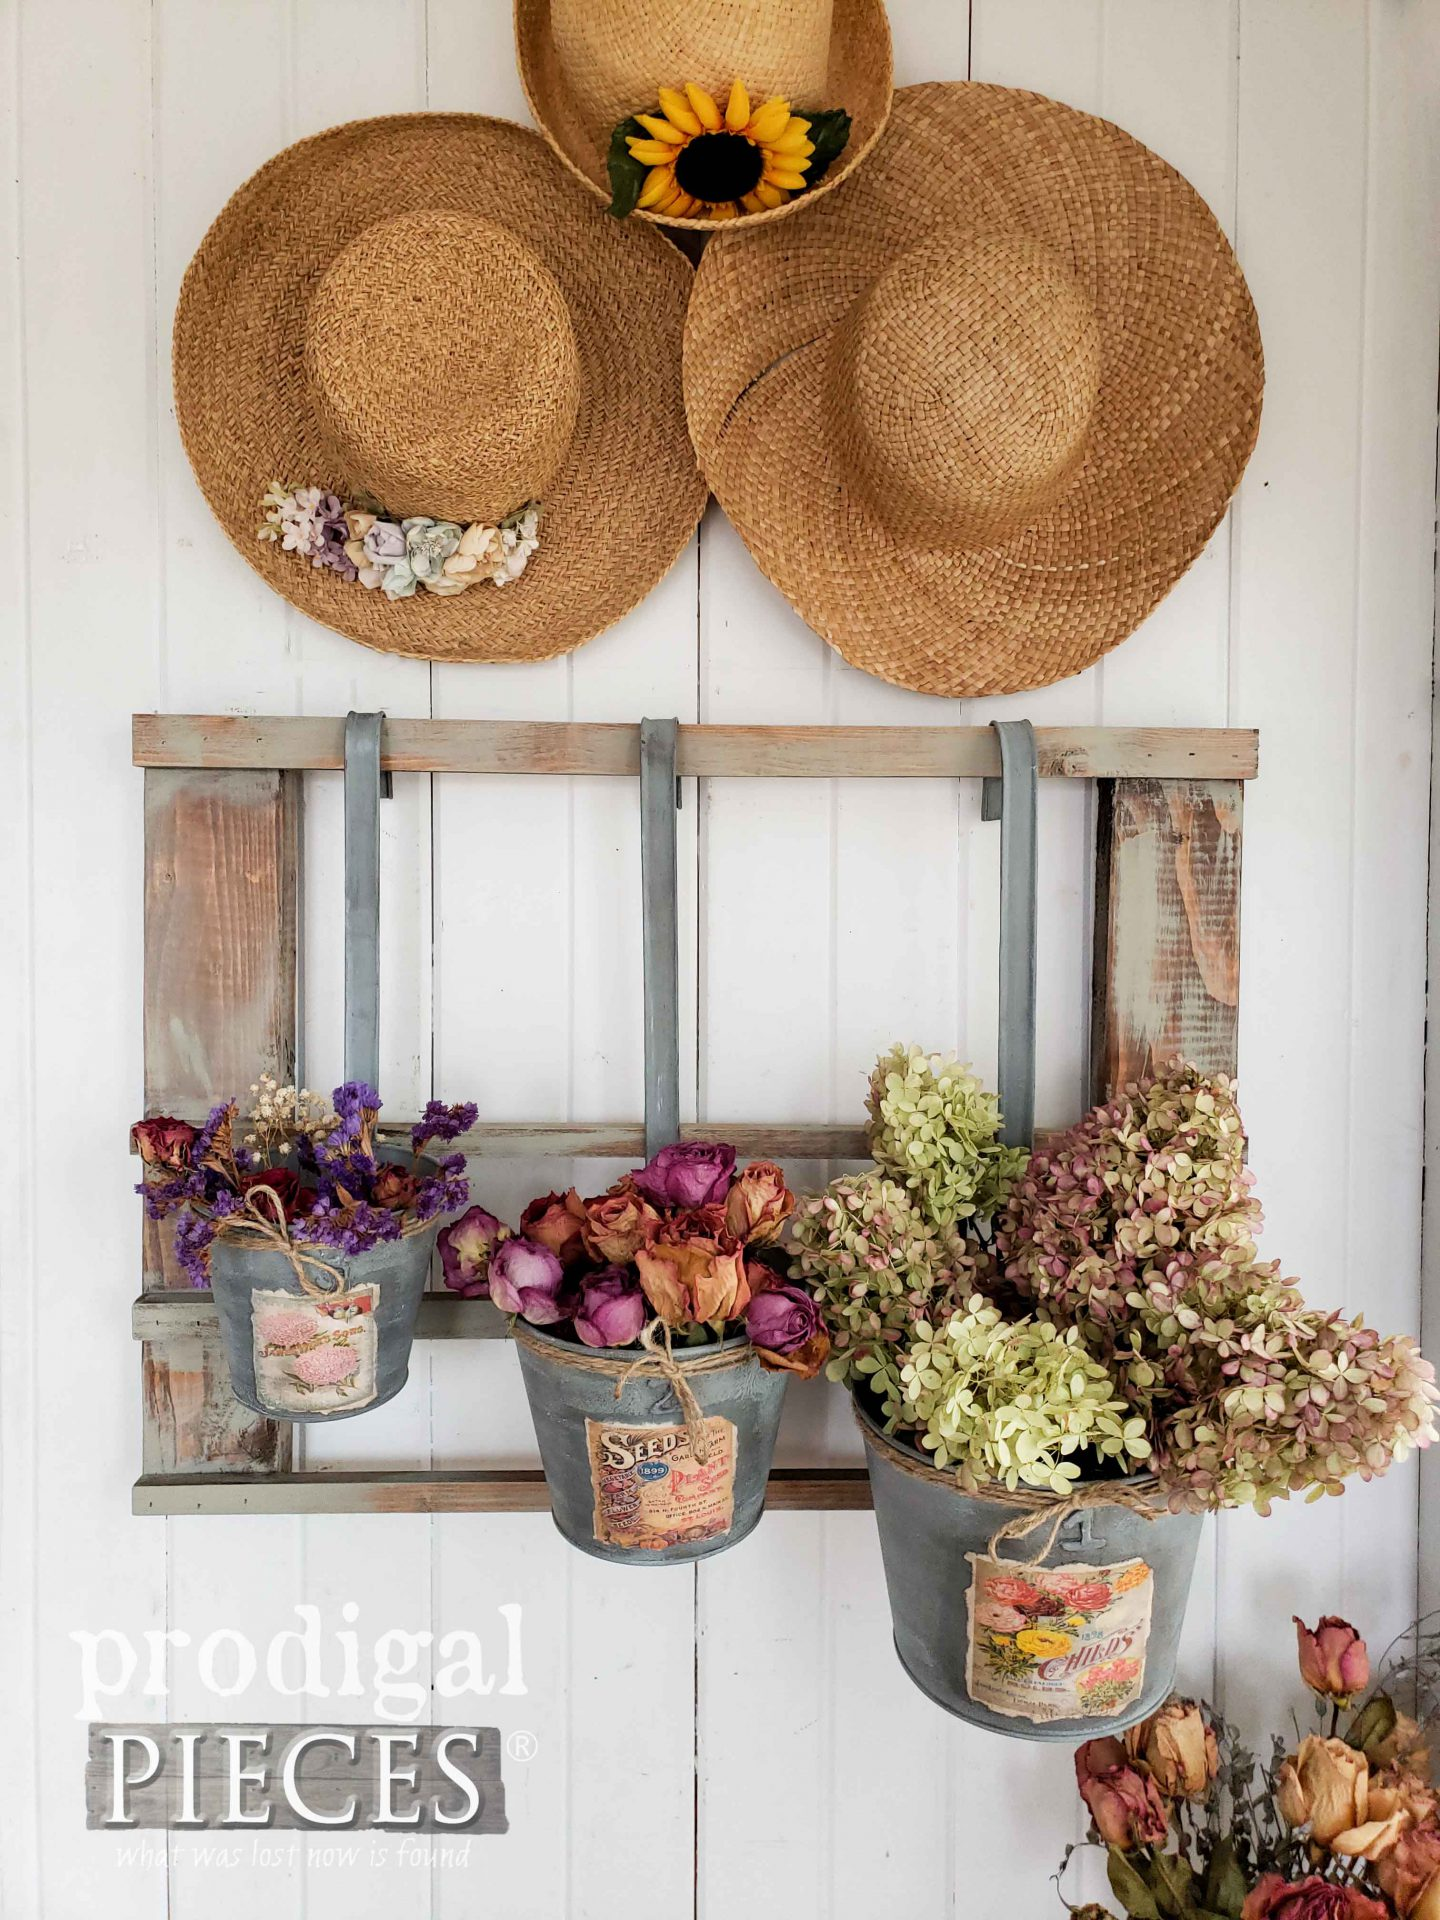 Cottage Style Flower Display Created from Upcycled Christmas Decor | Video Tutorial by Larissa of Prodigal Pieces | prodigalpieces.com #prodigalpieces #diy #cottage #home #farmhouse #homedecor